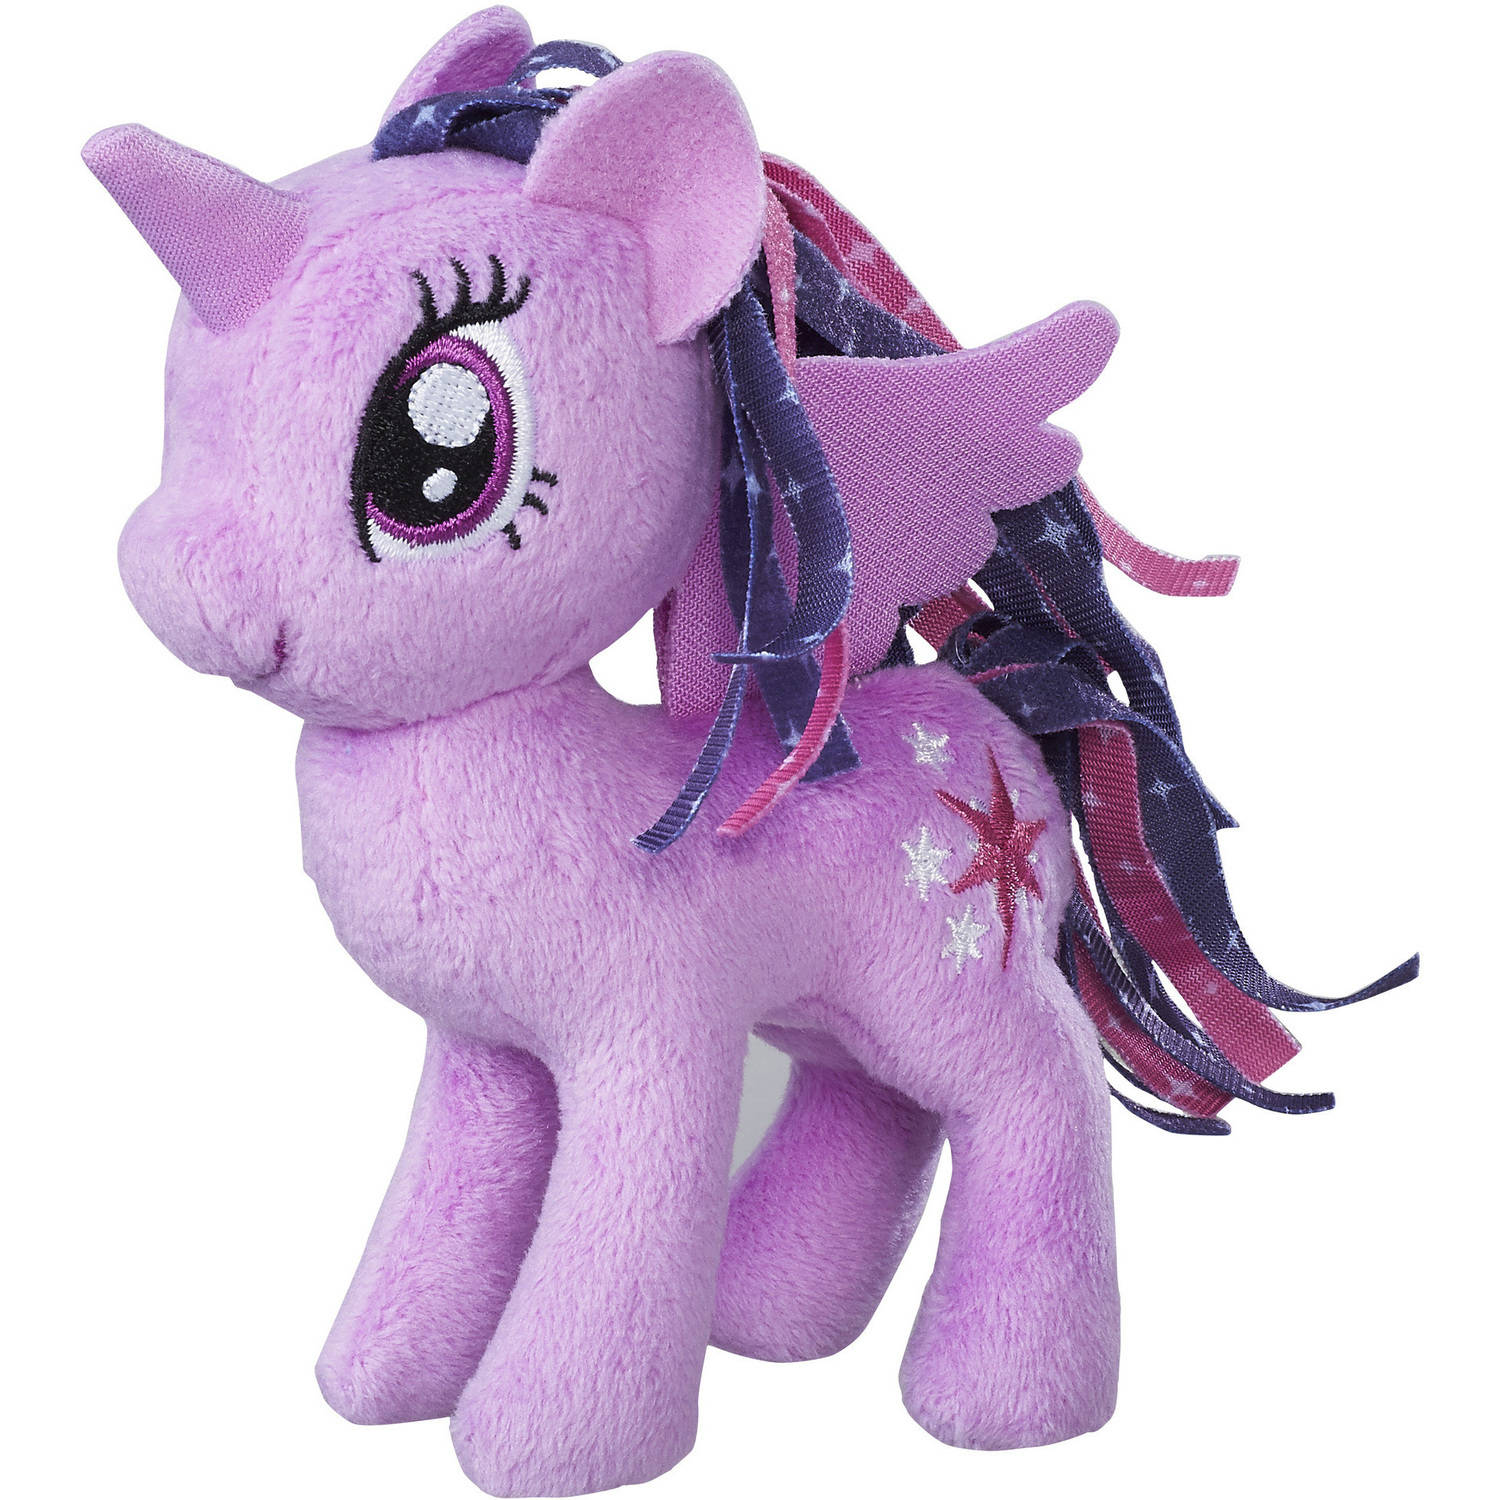 My Little Pony Friendship is Magic Princess Twilight Sparkle Small Plush by Hasbro